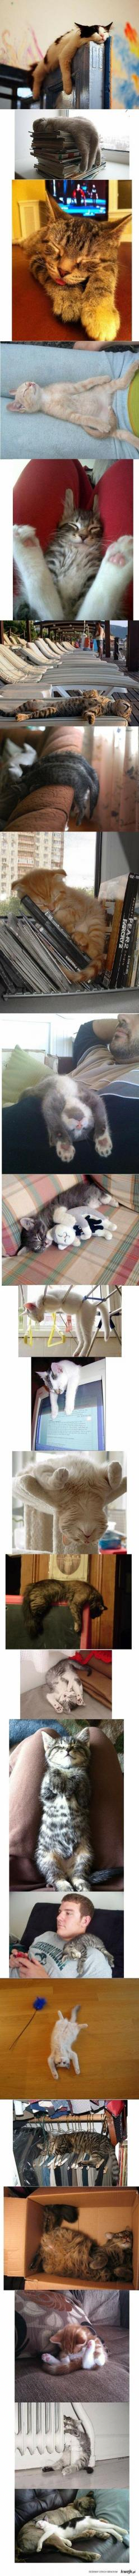 I don't know which one is more cute, the cat on the clothes rail or IN THE TROUSERS HANGERS!: Cats, Kitty Cat, Sleepy Cat, Sleepy Kitty, Crazy Cat, Cat Naps, Sleepy Kitties, Kittycat